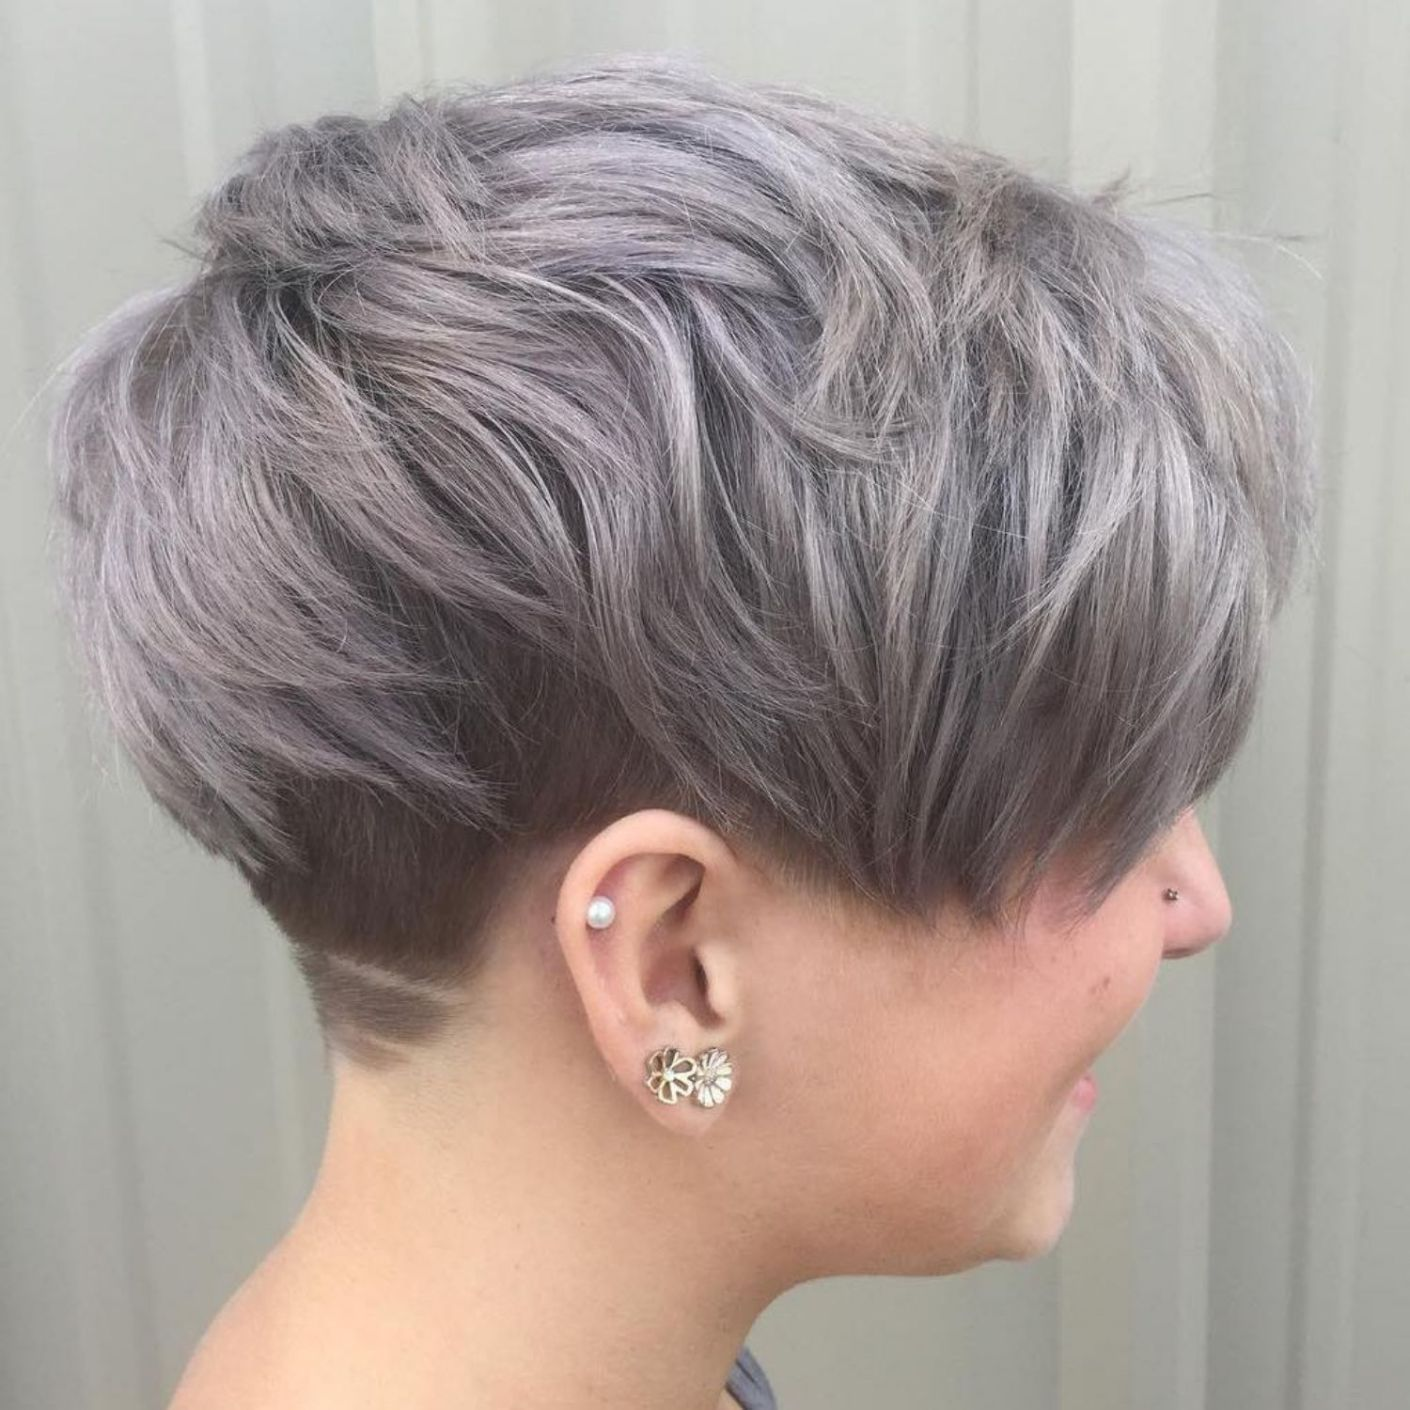 50 Super Cute Looks With Short Hairstyles For Round Faces Short Hair Styles For Round Faces Short Hair Styles Hairstyles For Round Faces